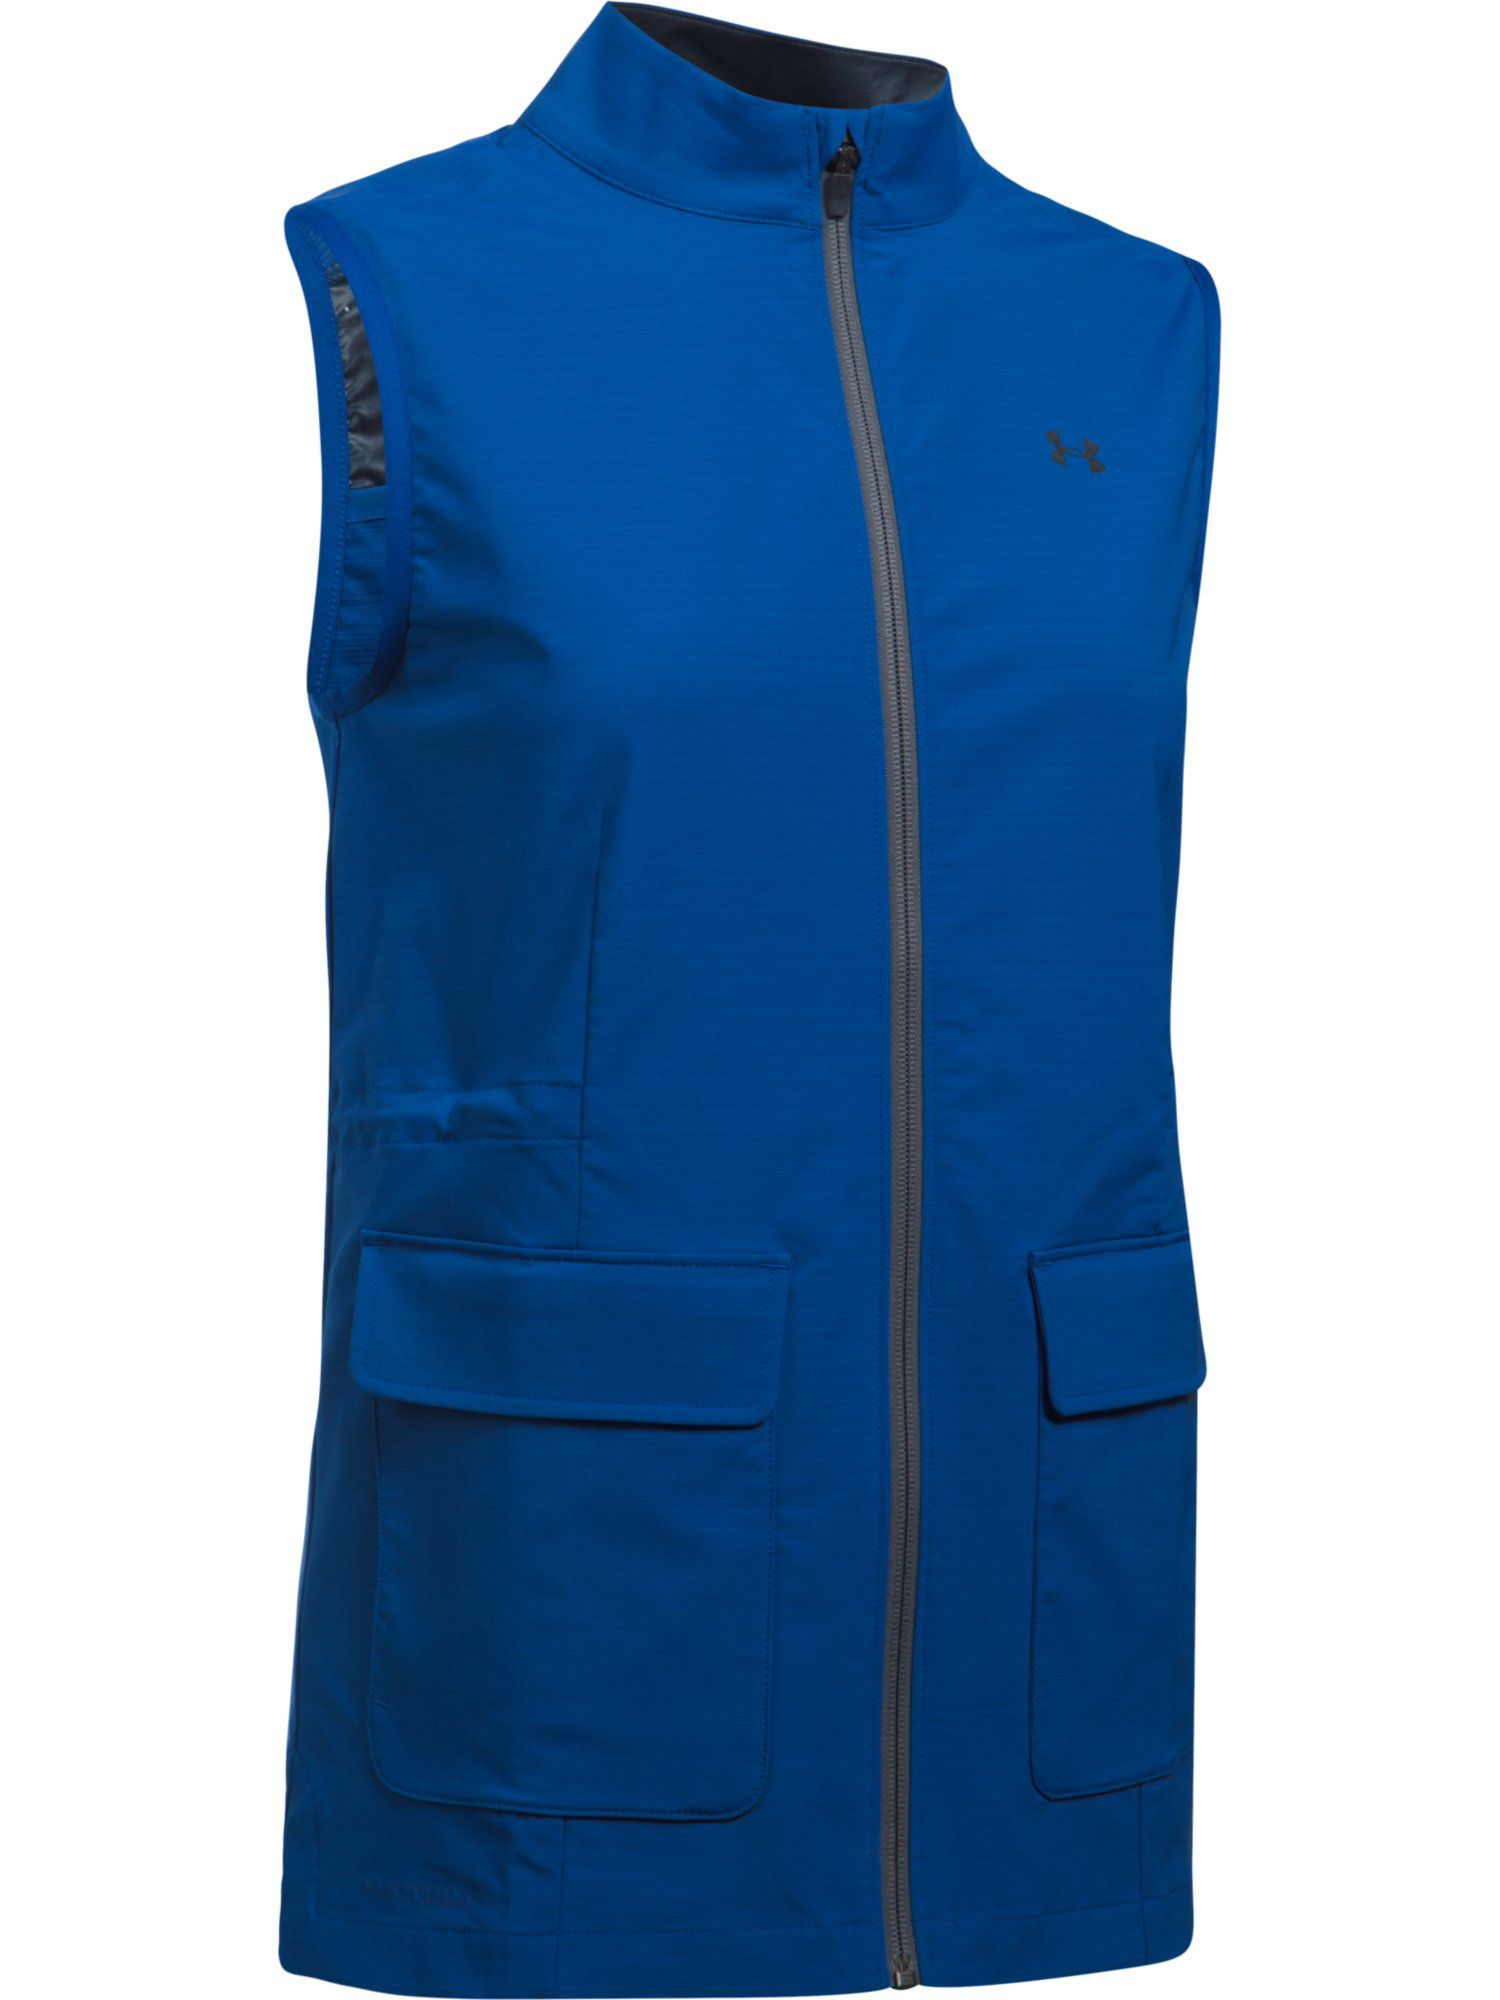 Under Armour Storm Windstrike Full Zip Vest, Blue